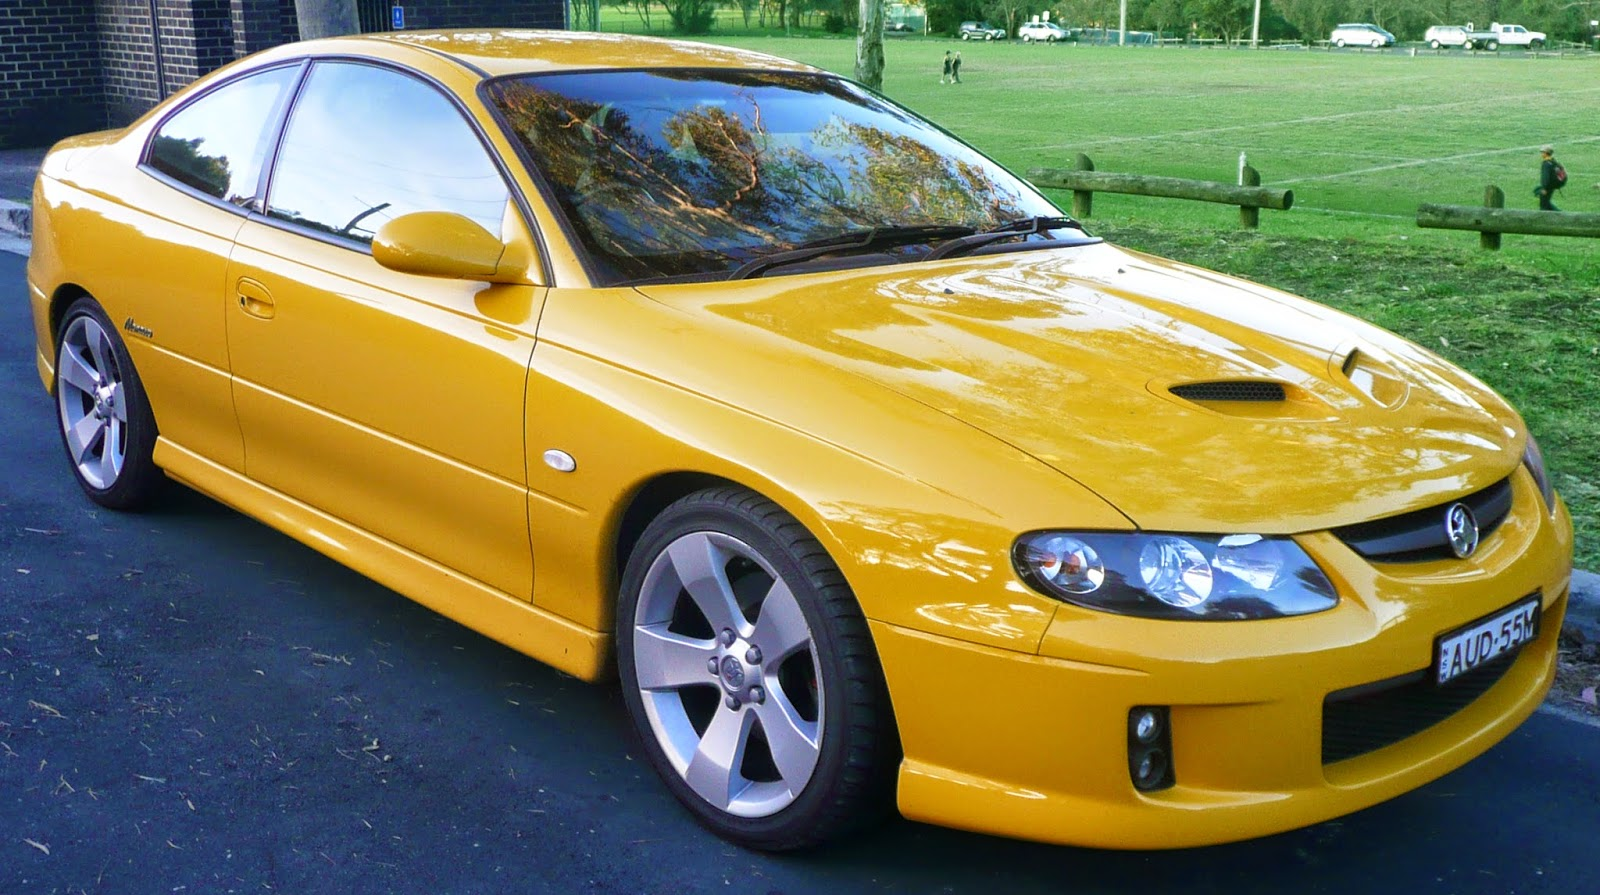 The Monaro coupé was resurrected in 2001 as a low-volume niche model. Unanticipated overseas demand proved otherwise